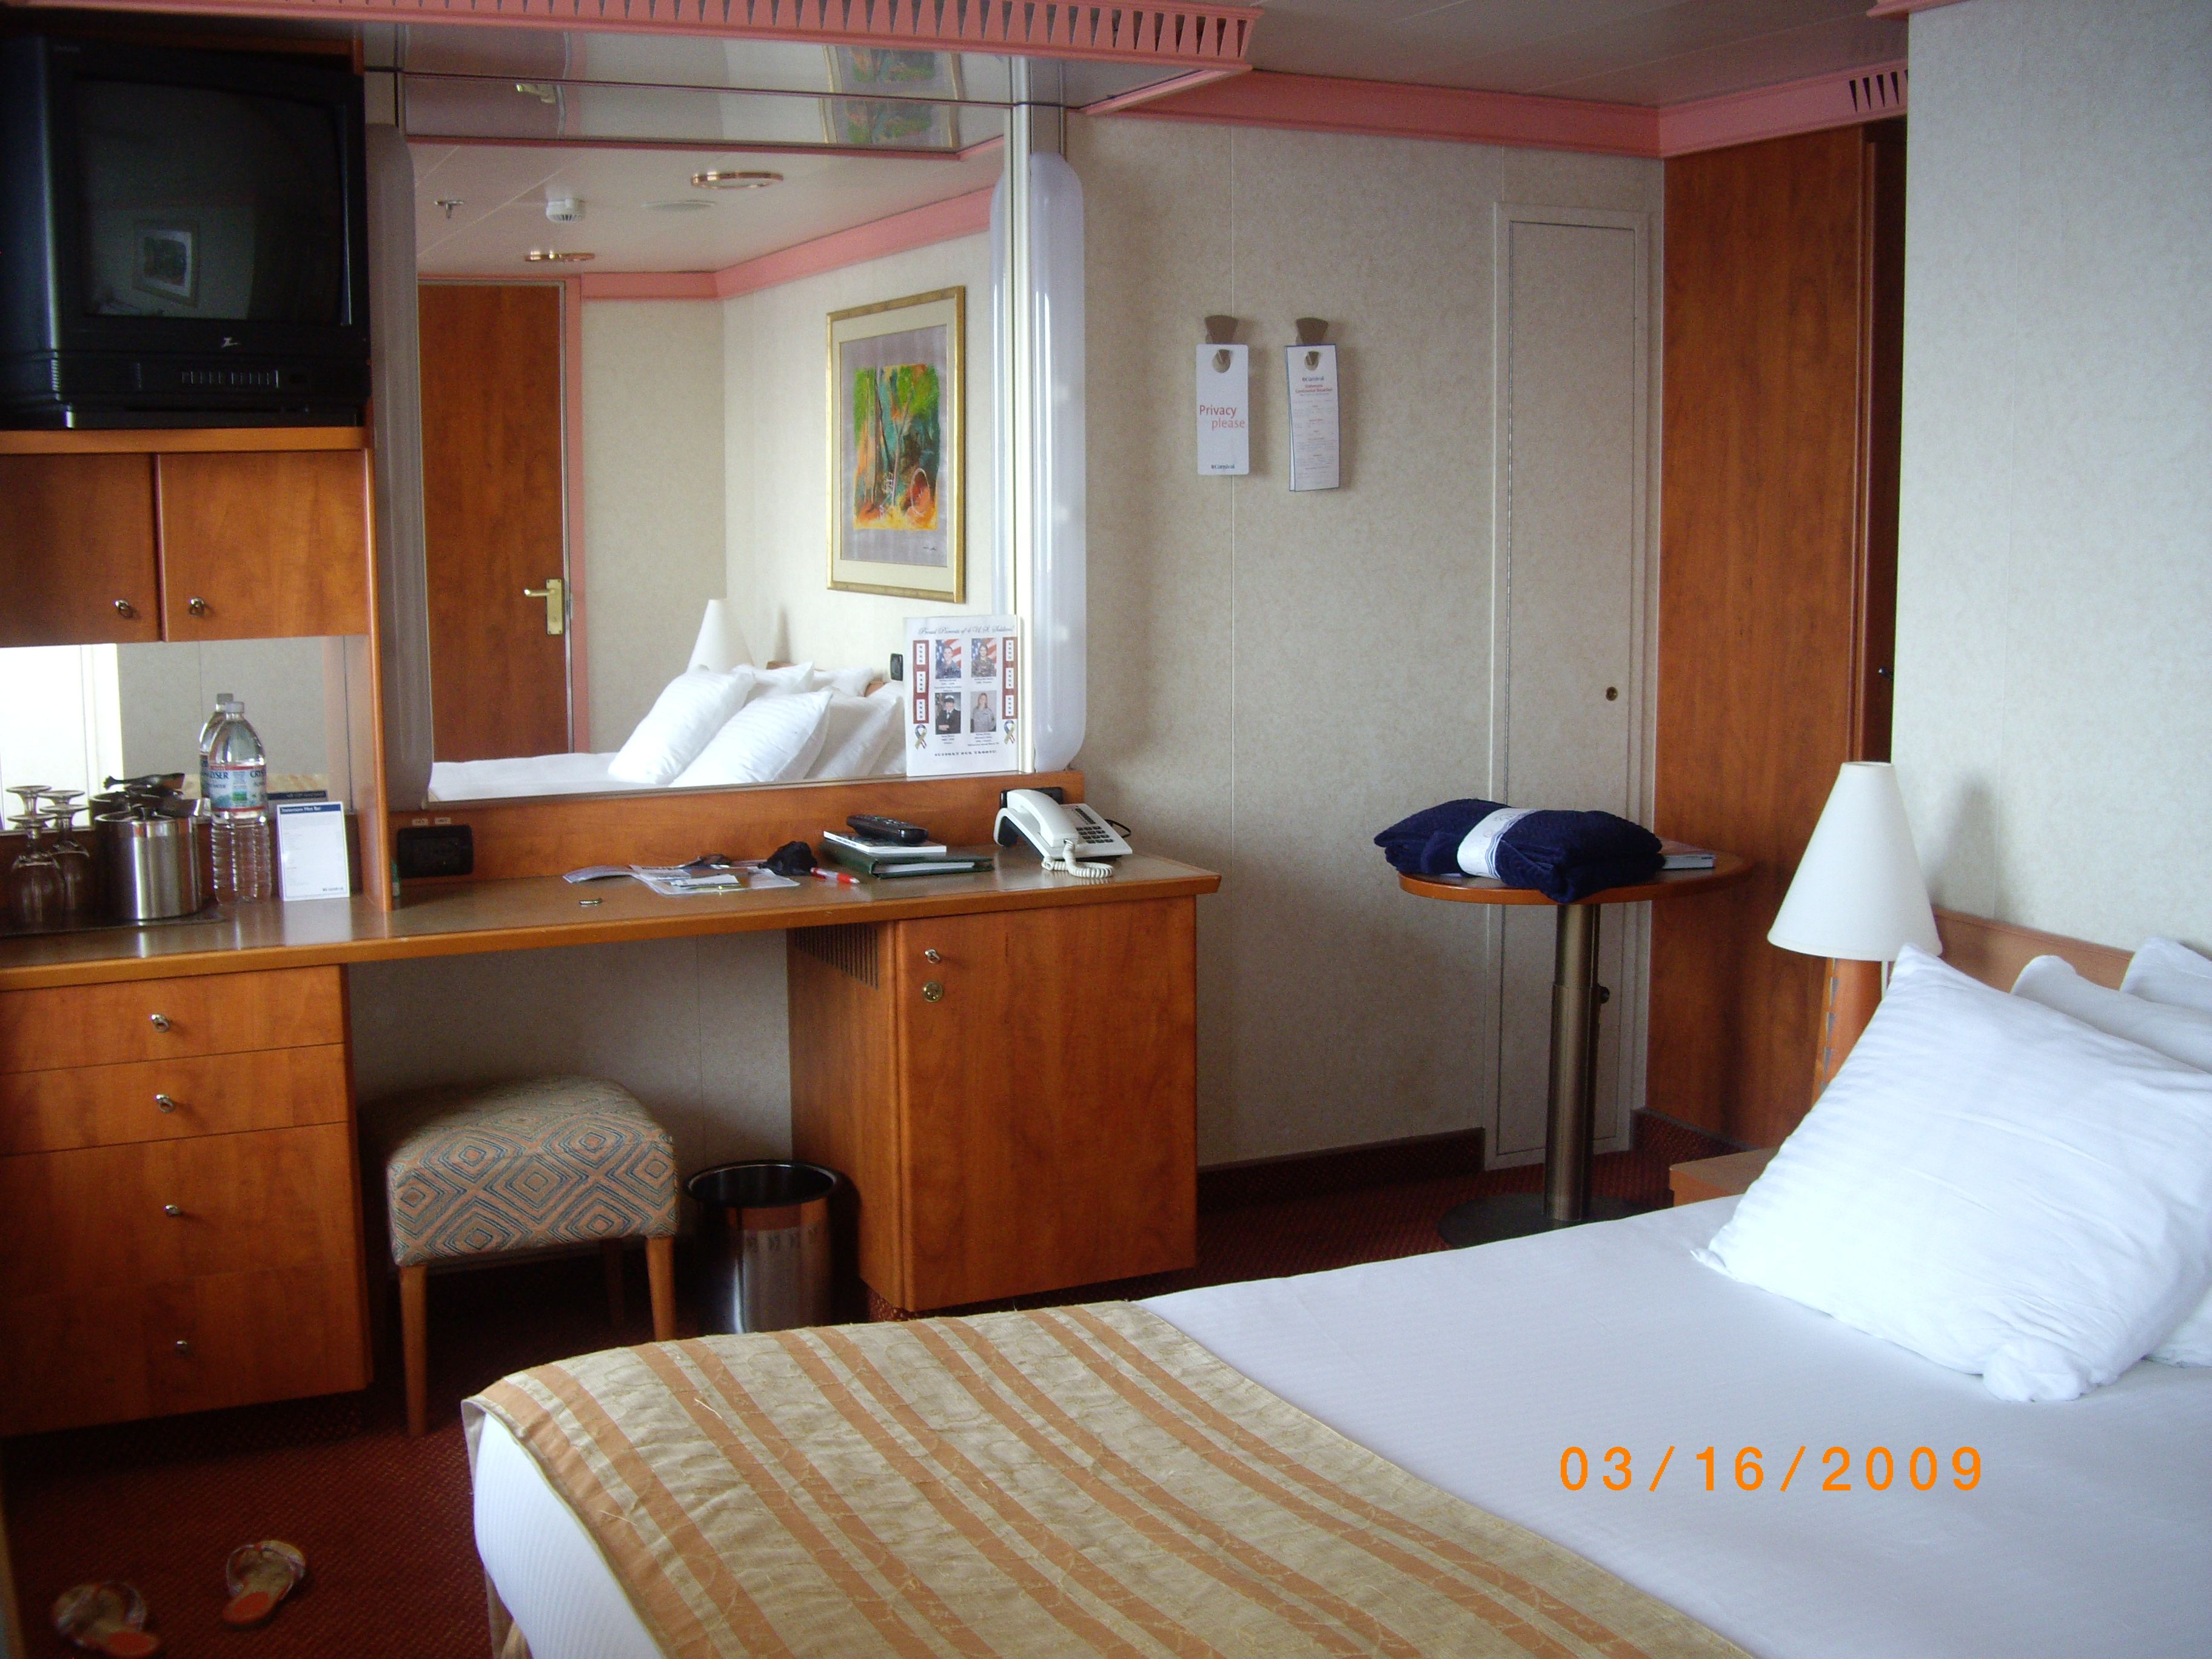 Shaped Cabin Aft Cruise Ships Pinterest. Full resolution  photo, nominally Width 3648 Height 2736 pixels, photo with #9D612E.